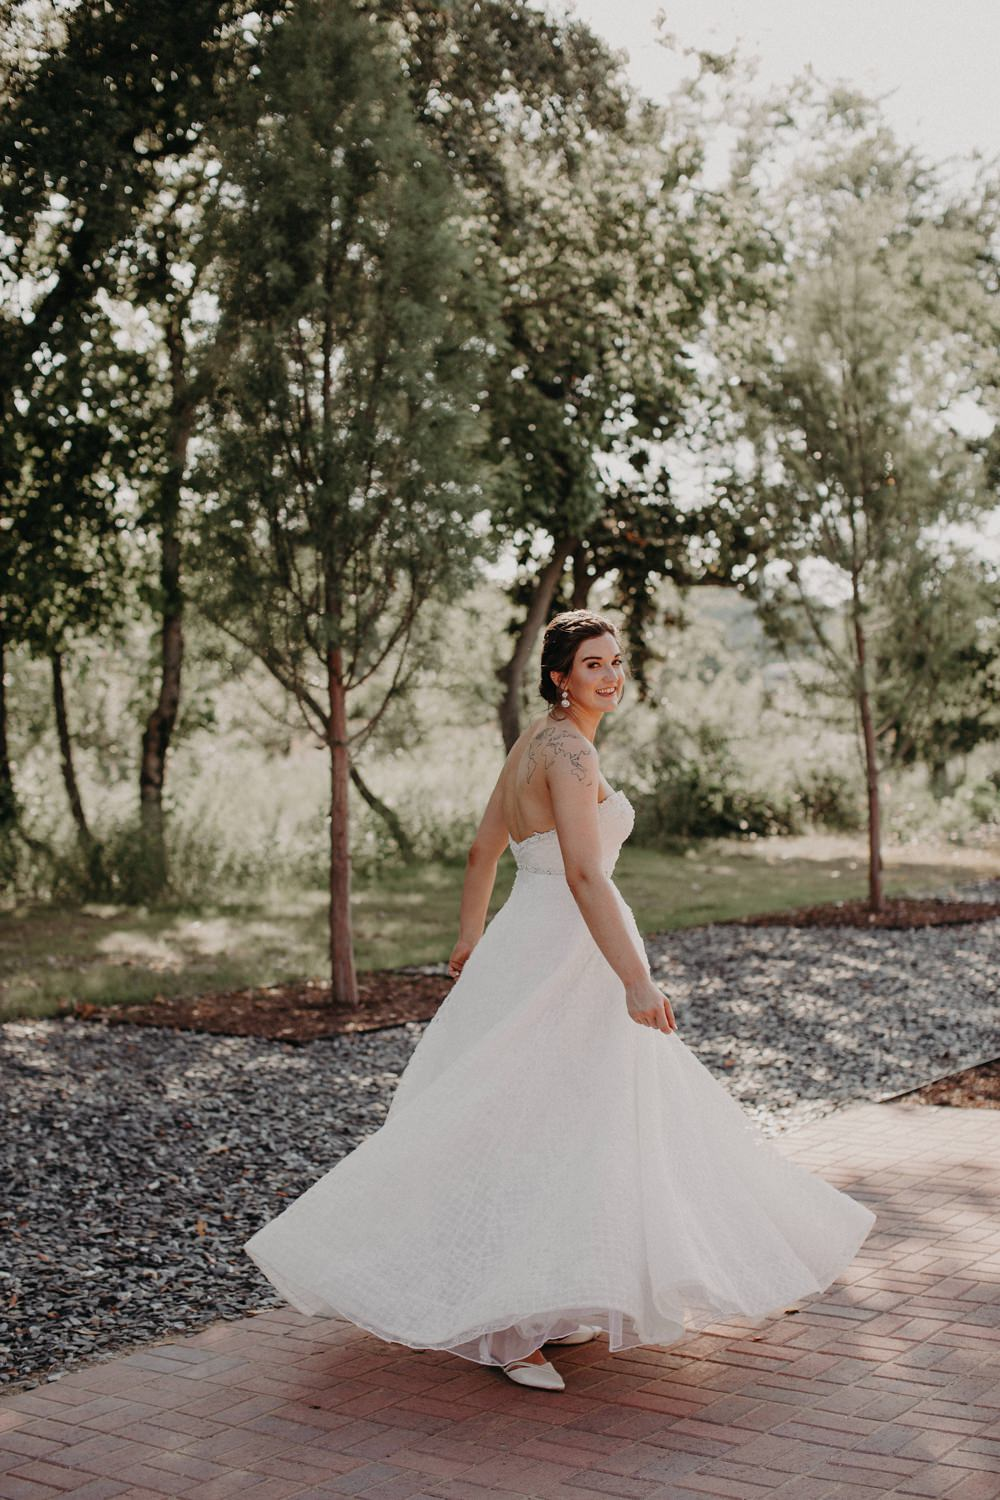 Dress Gown Bride Bridal Strapless Georgia Wedding Aline Marin Photography